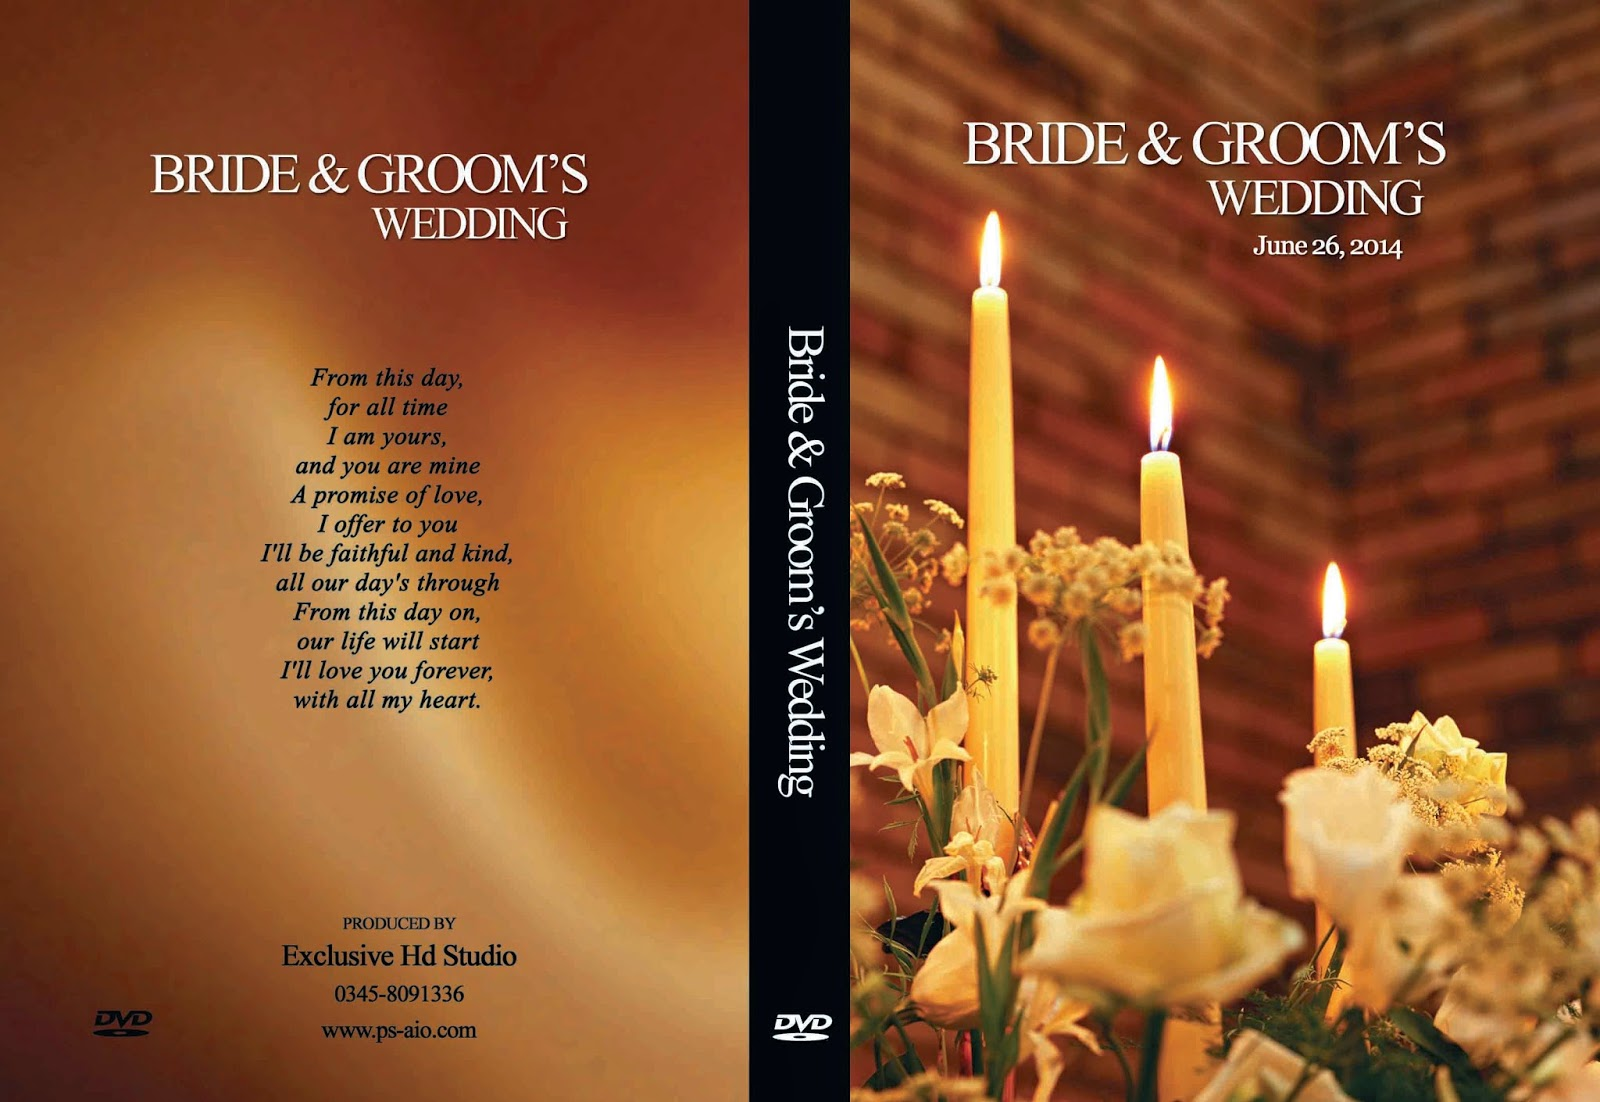 Photoshop Wedding Dvd Cover Psd High Resulation Free ...